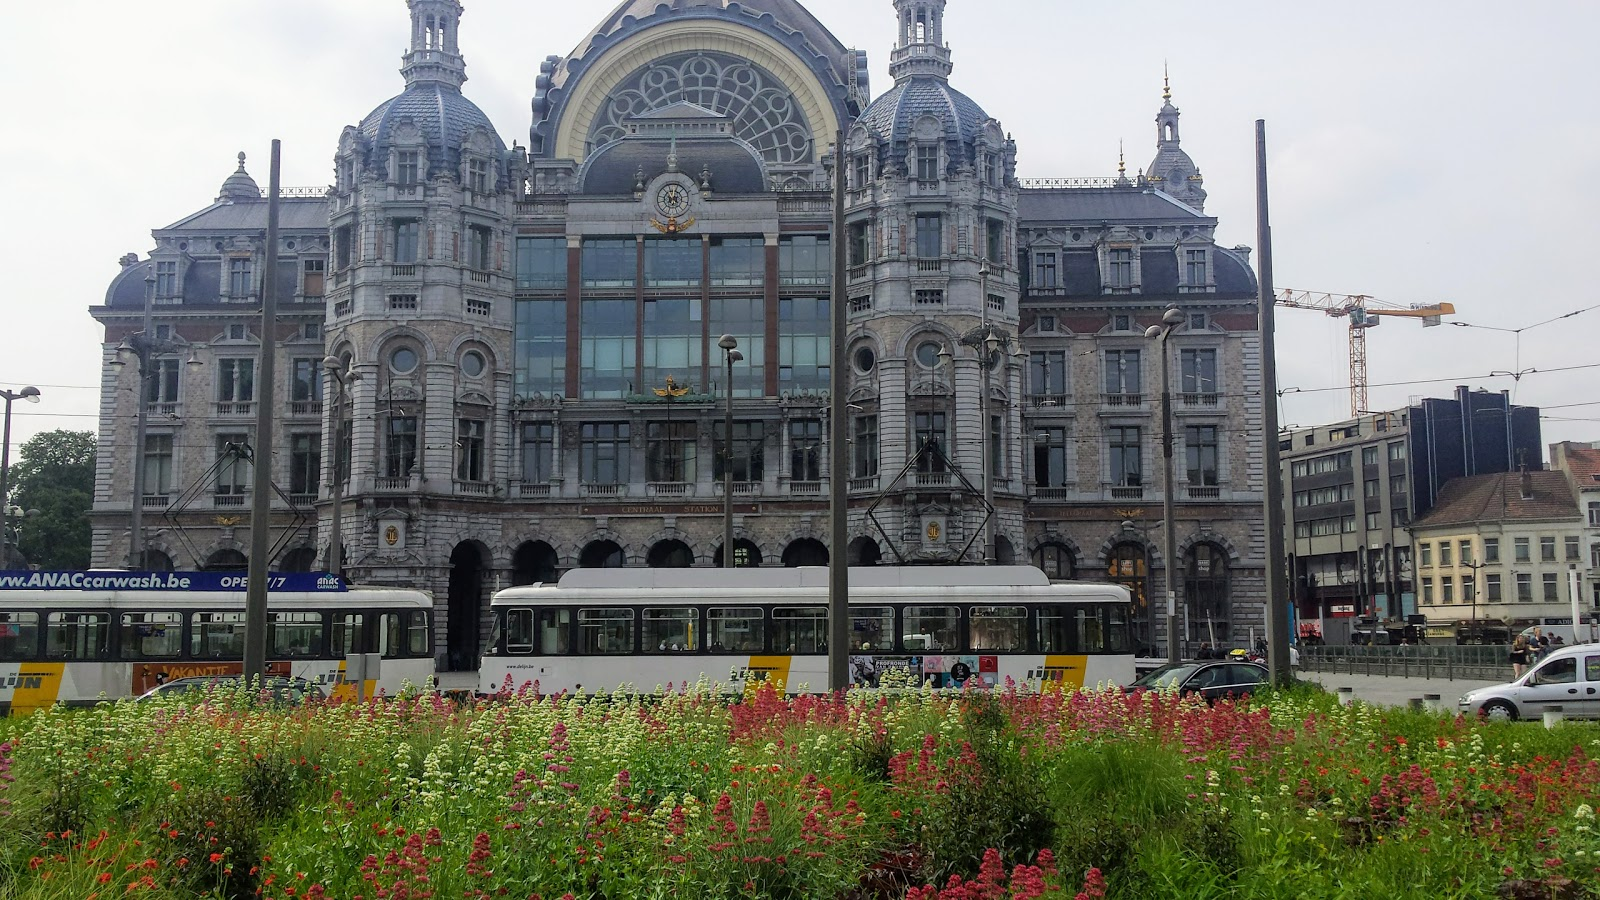 The Central Station Of Antwerp